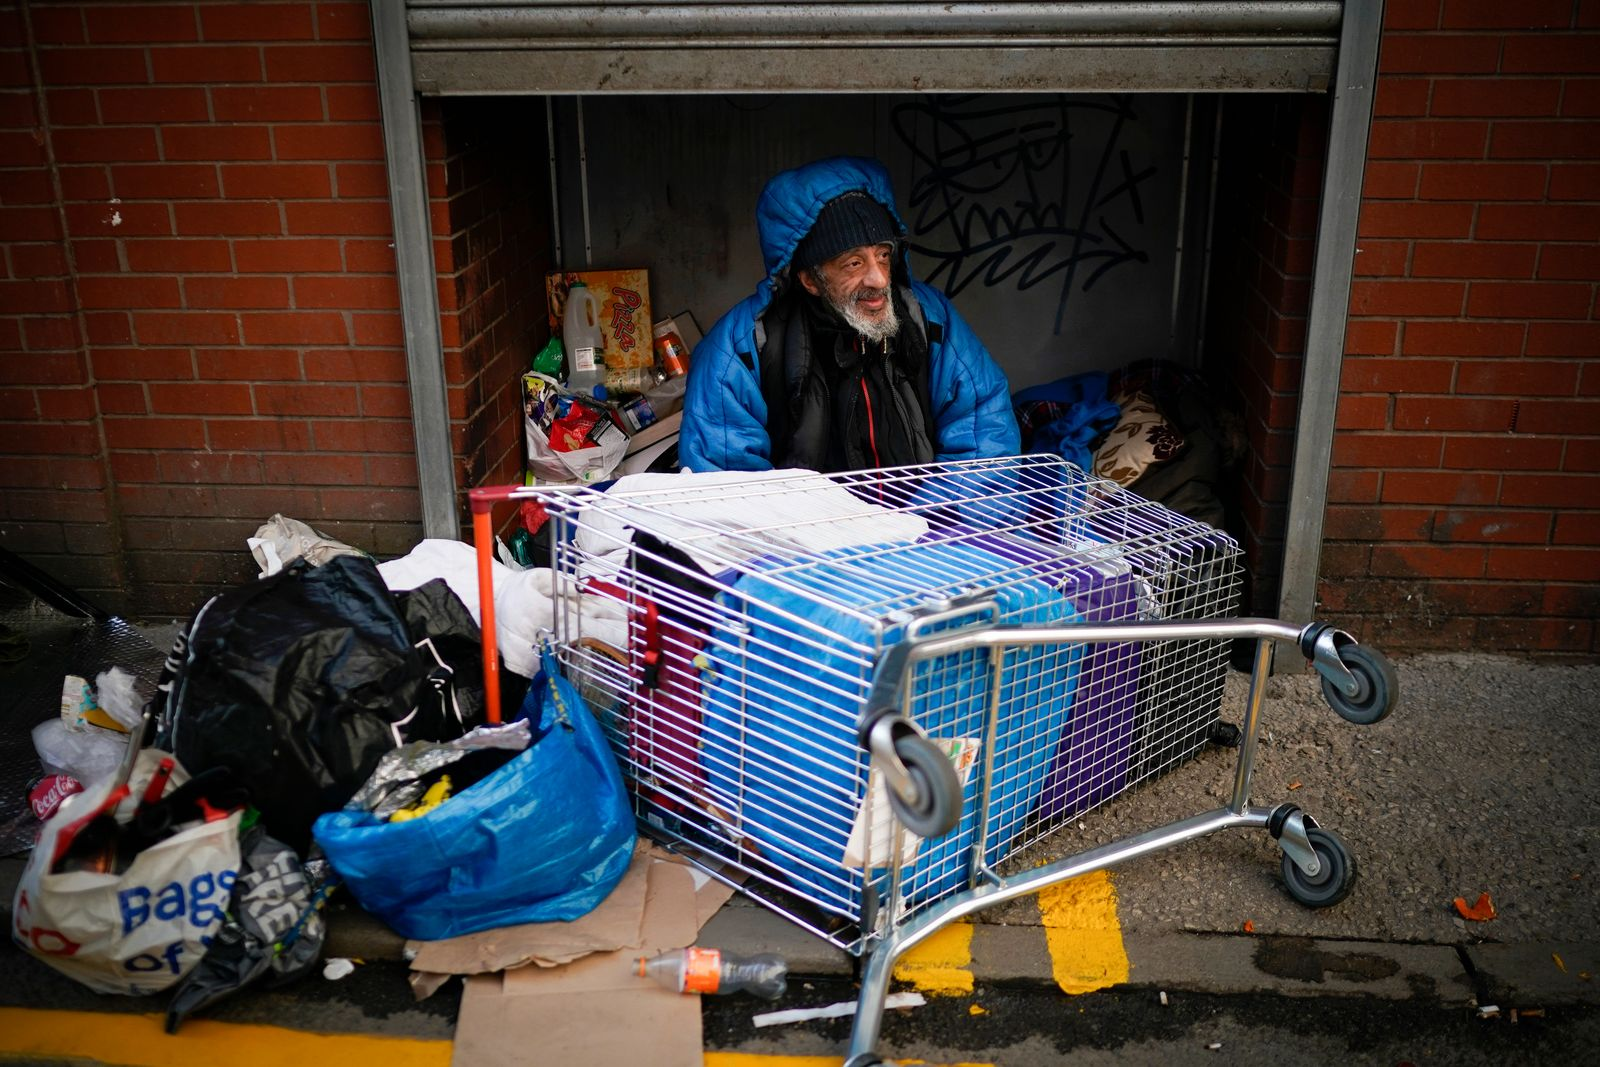 *** BESTPIX *** Councils To House Rough Sleepers Amid Coronavirus Outbreak